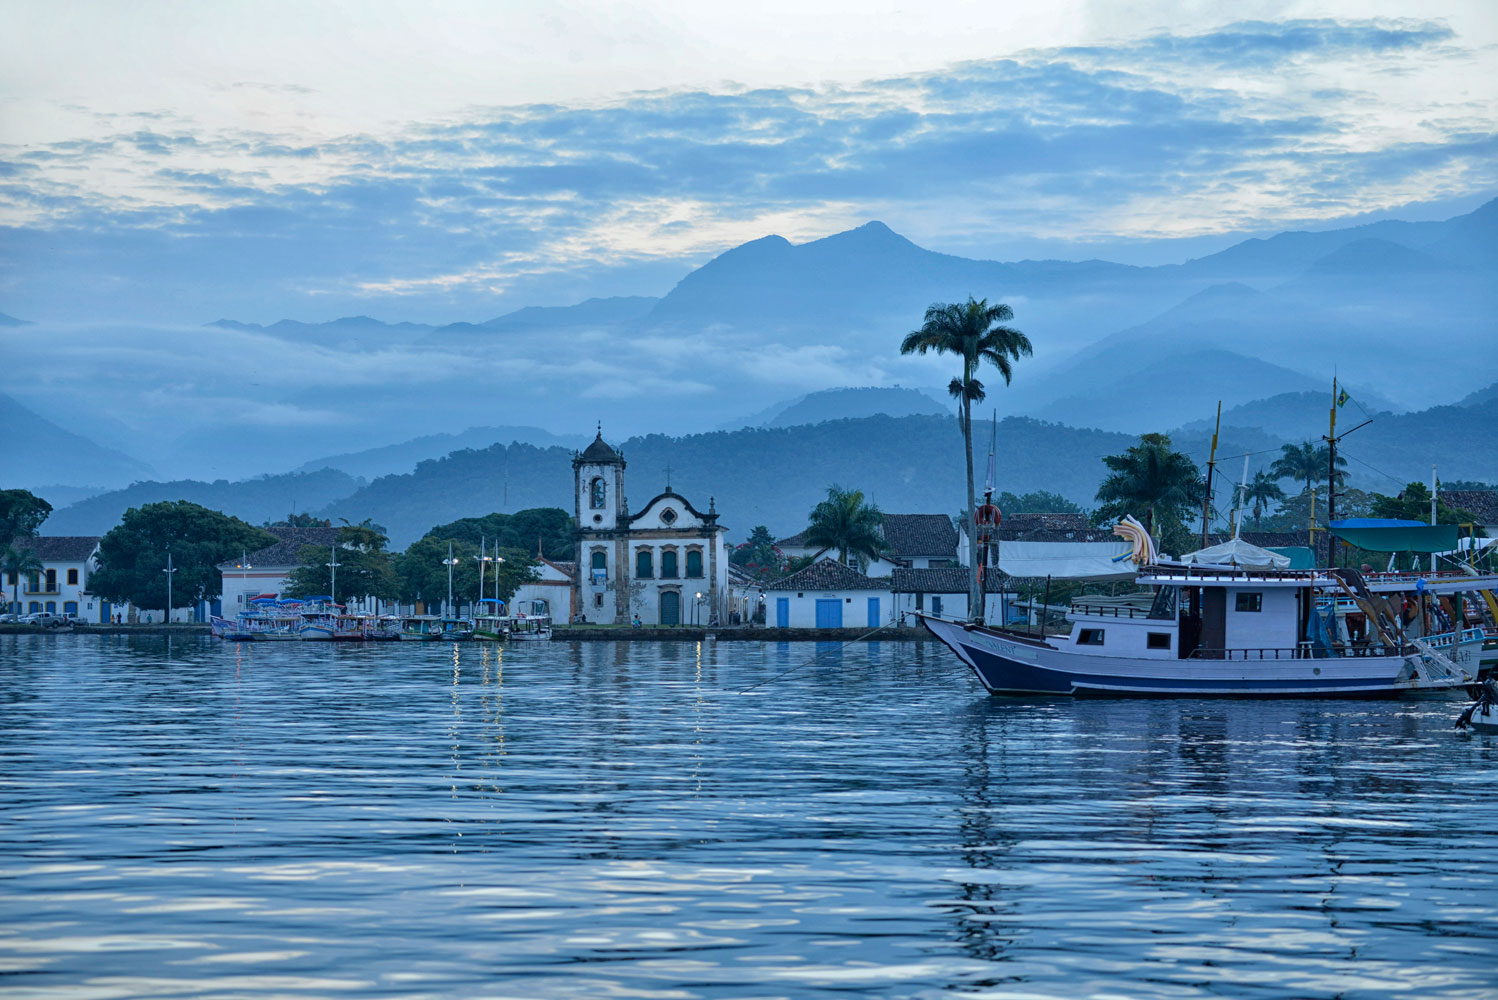 Paraty is a popular tourist destination and former Portuguese colony stuns visitors with its incredible waterfalls and mountain views.